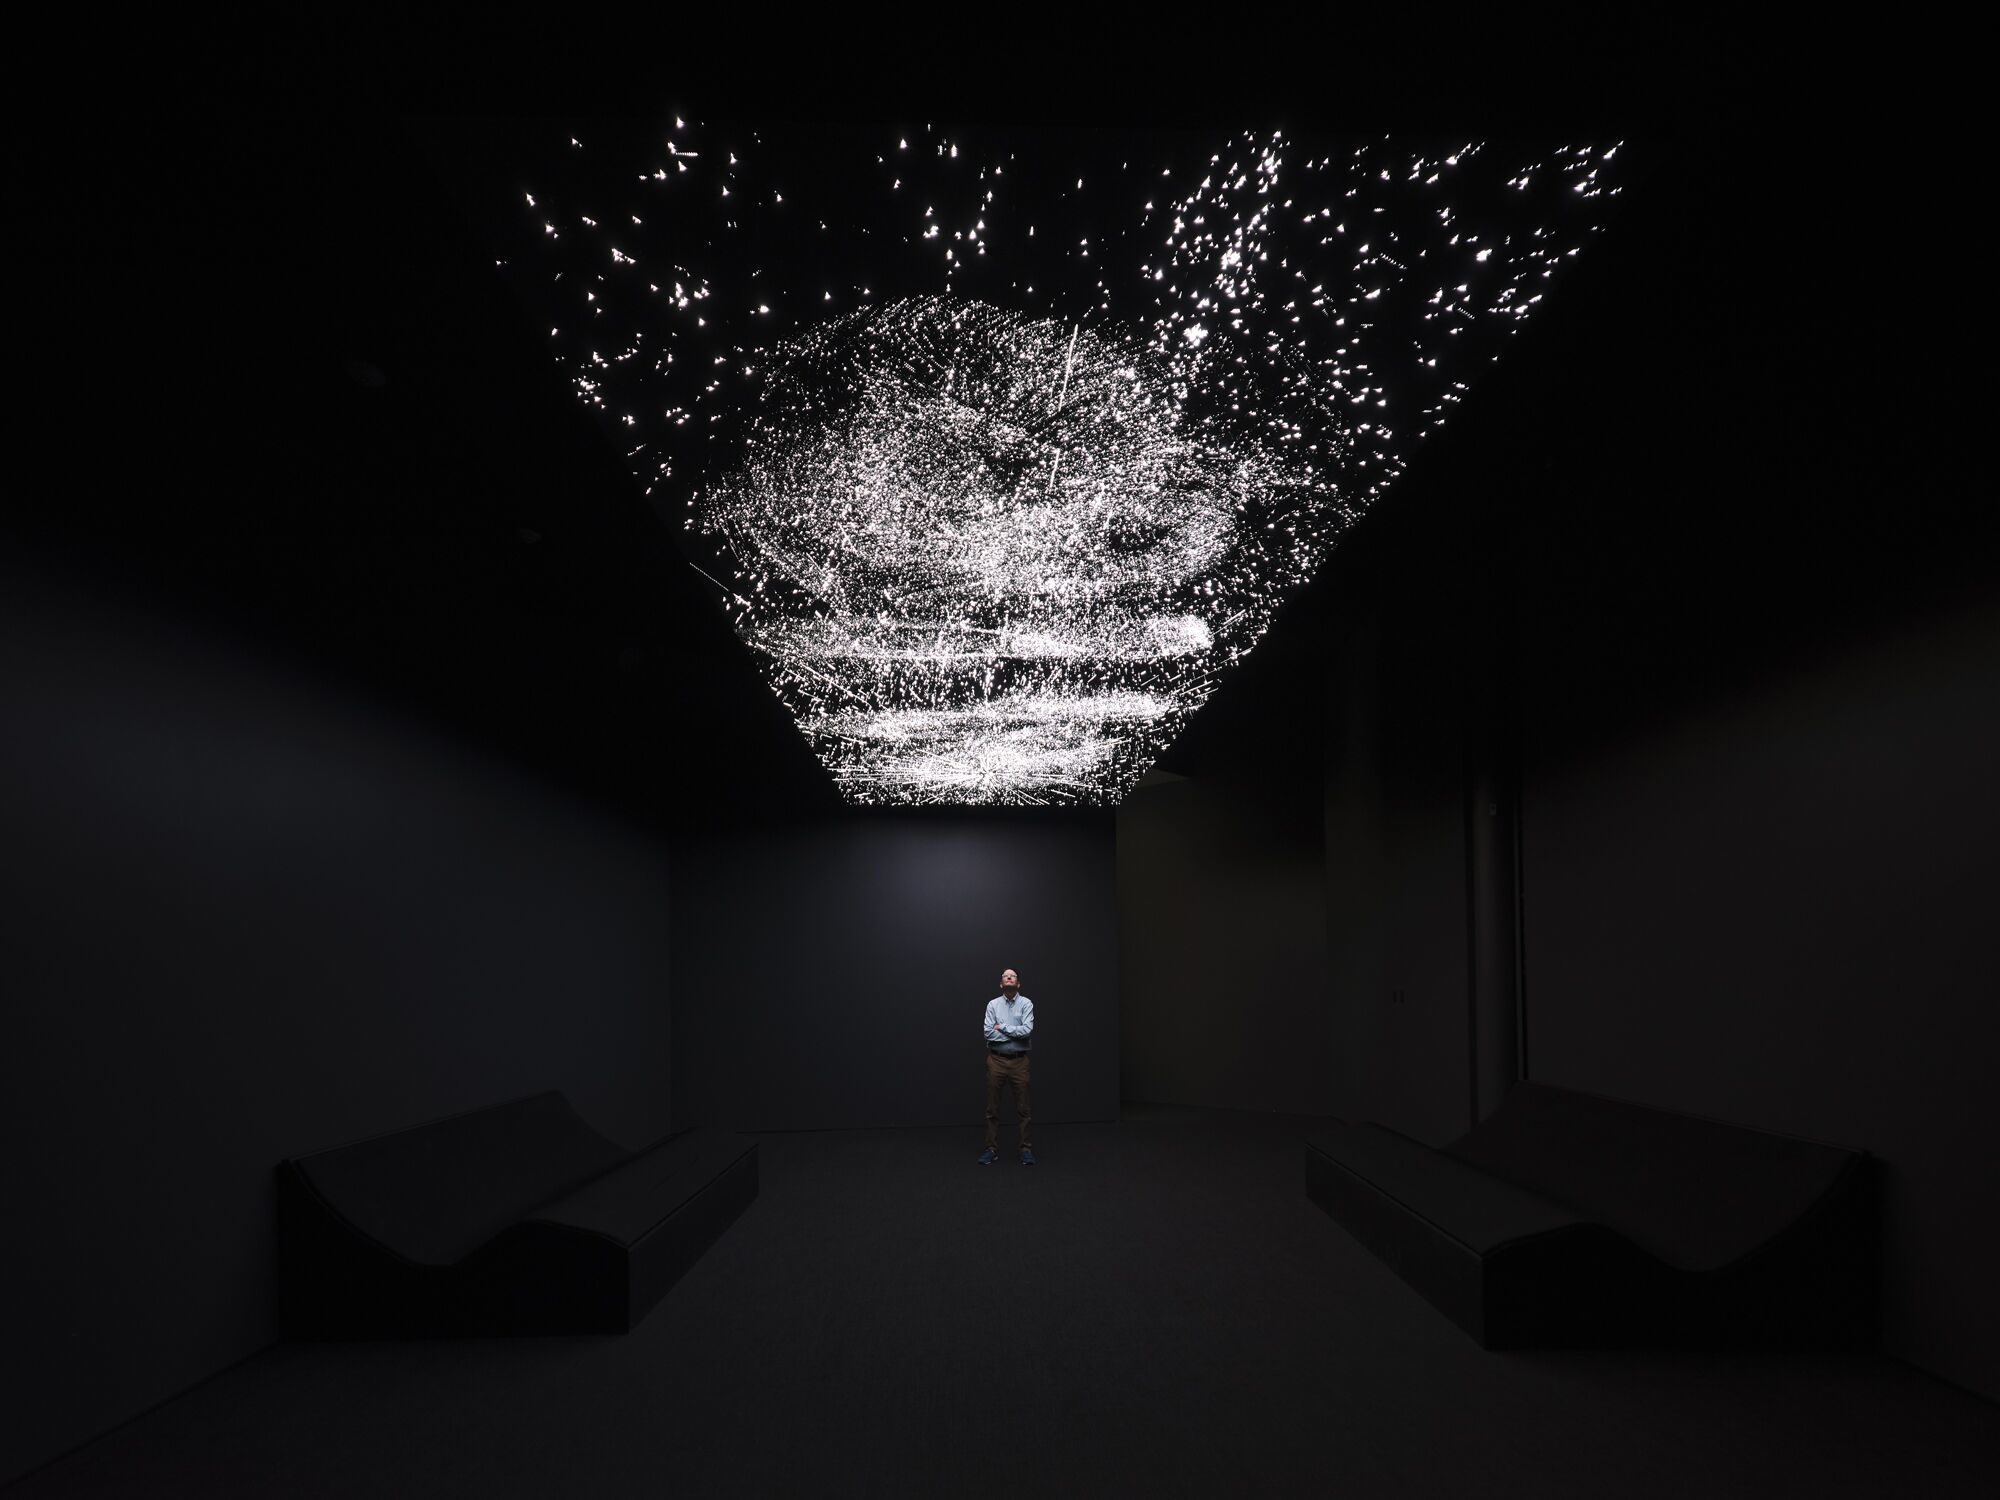 A person stands alone in a dark room, beneath a digital rendering of a starry sky